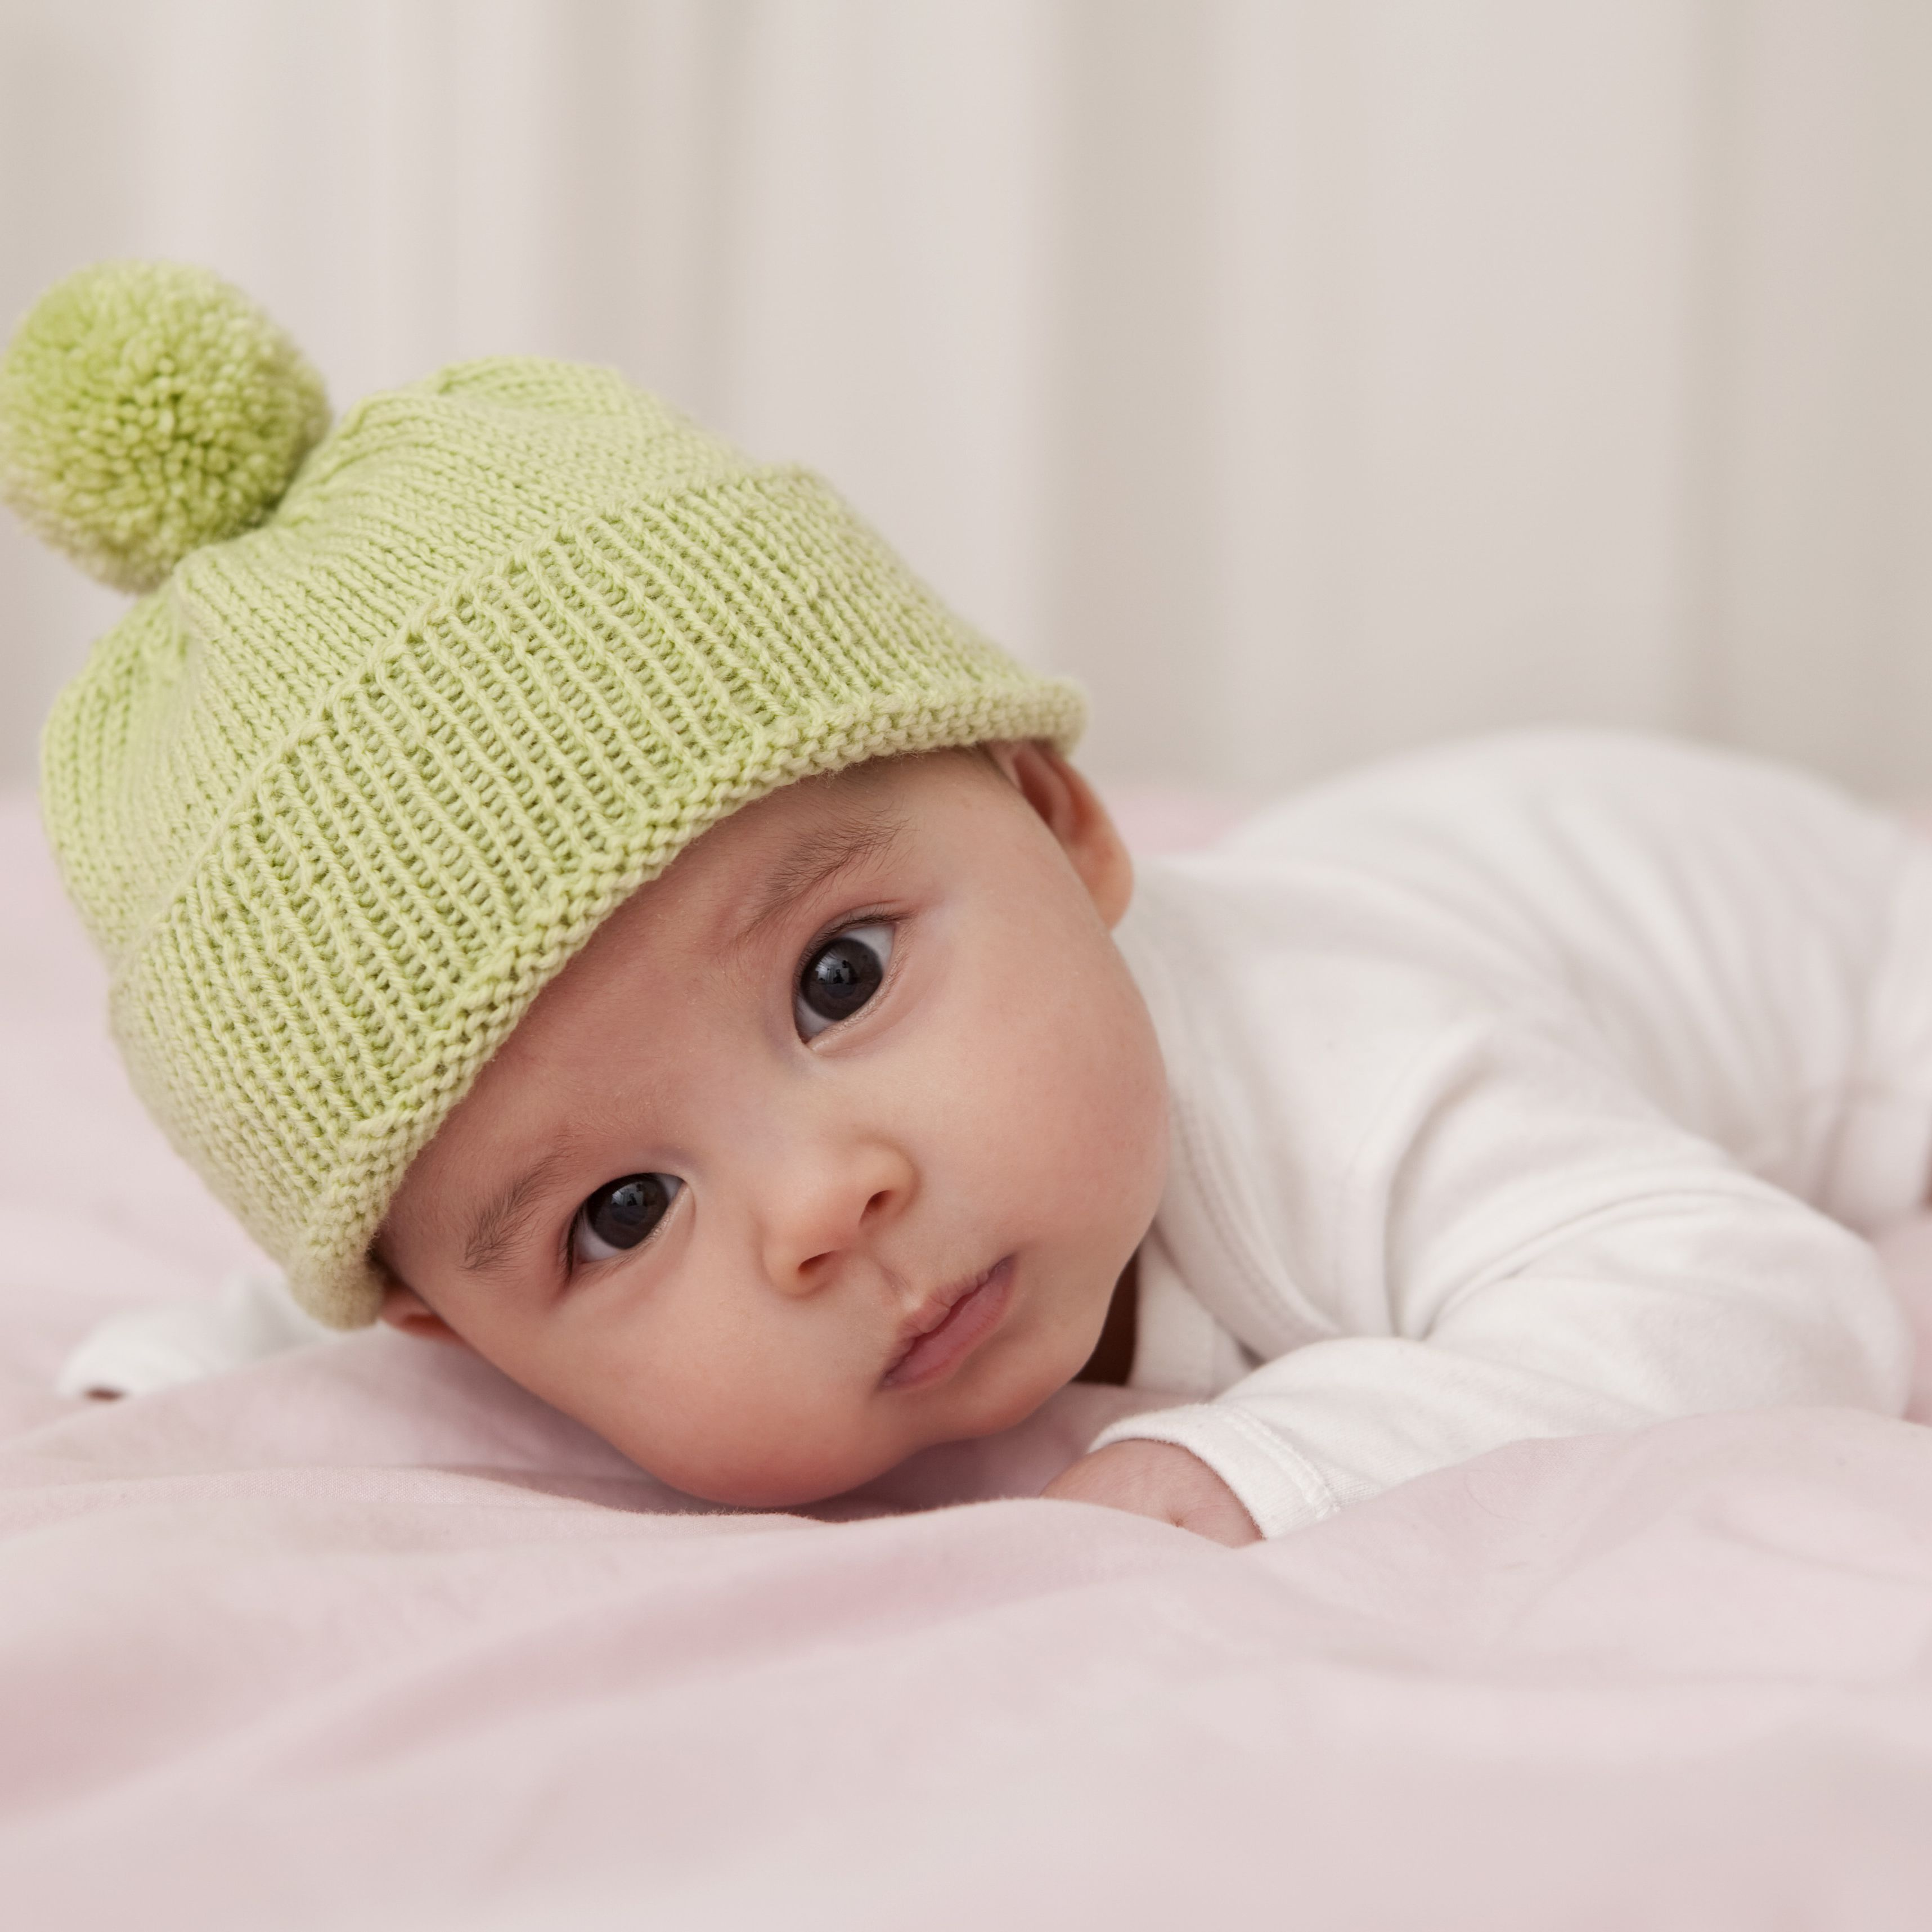 Various Crochet Patterns Childs Babies Please Choose from the Drop-down Menu